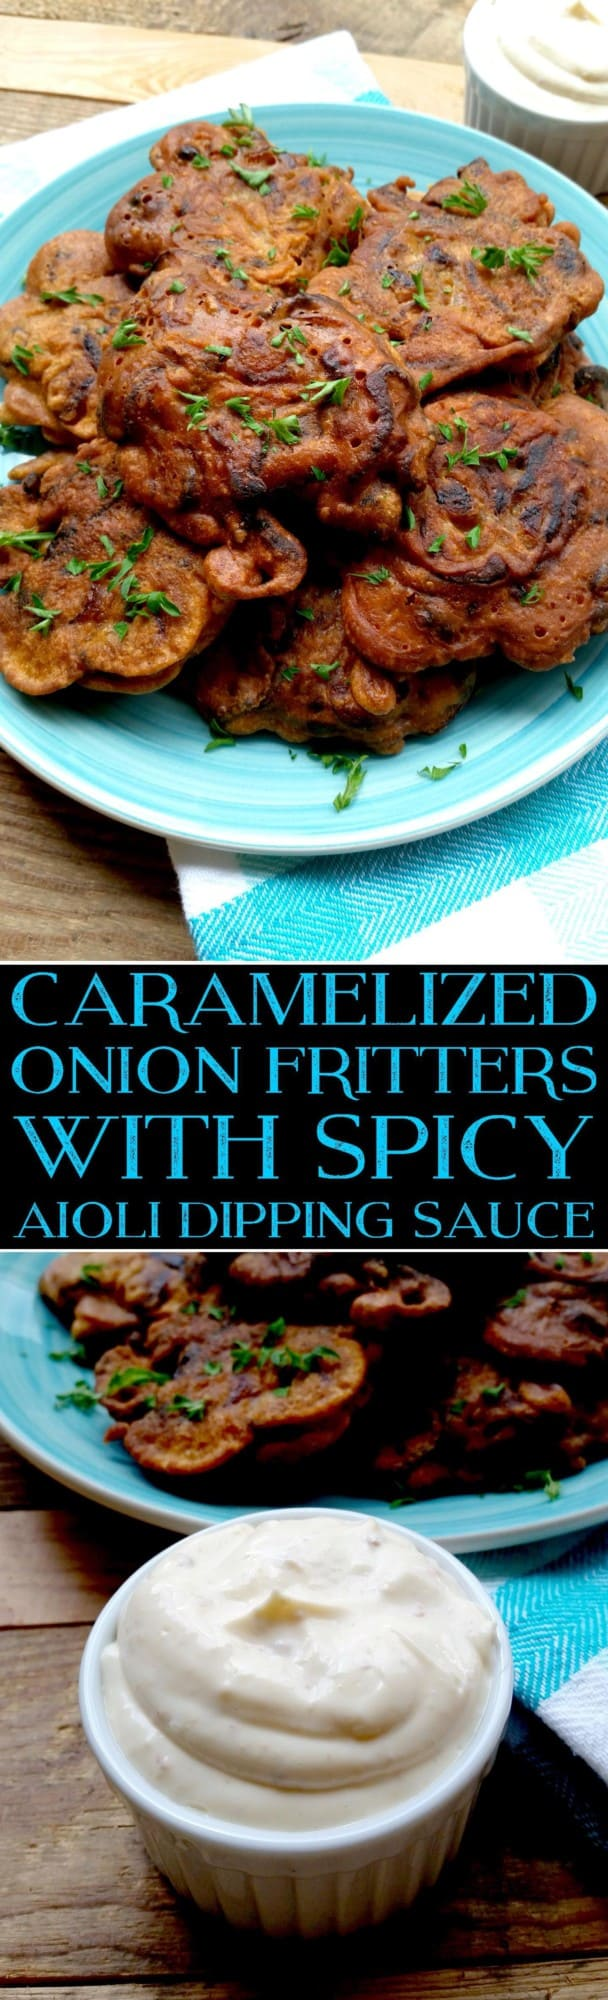 Caramelized Onion Fritters with Spicy Aioli Dipping Sauce 2